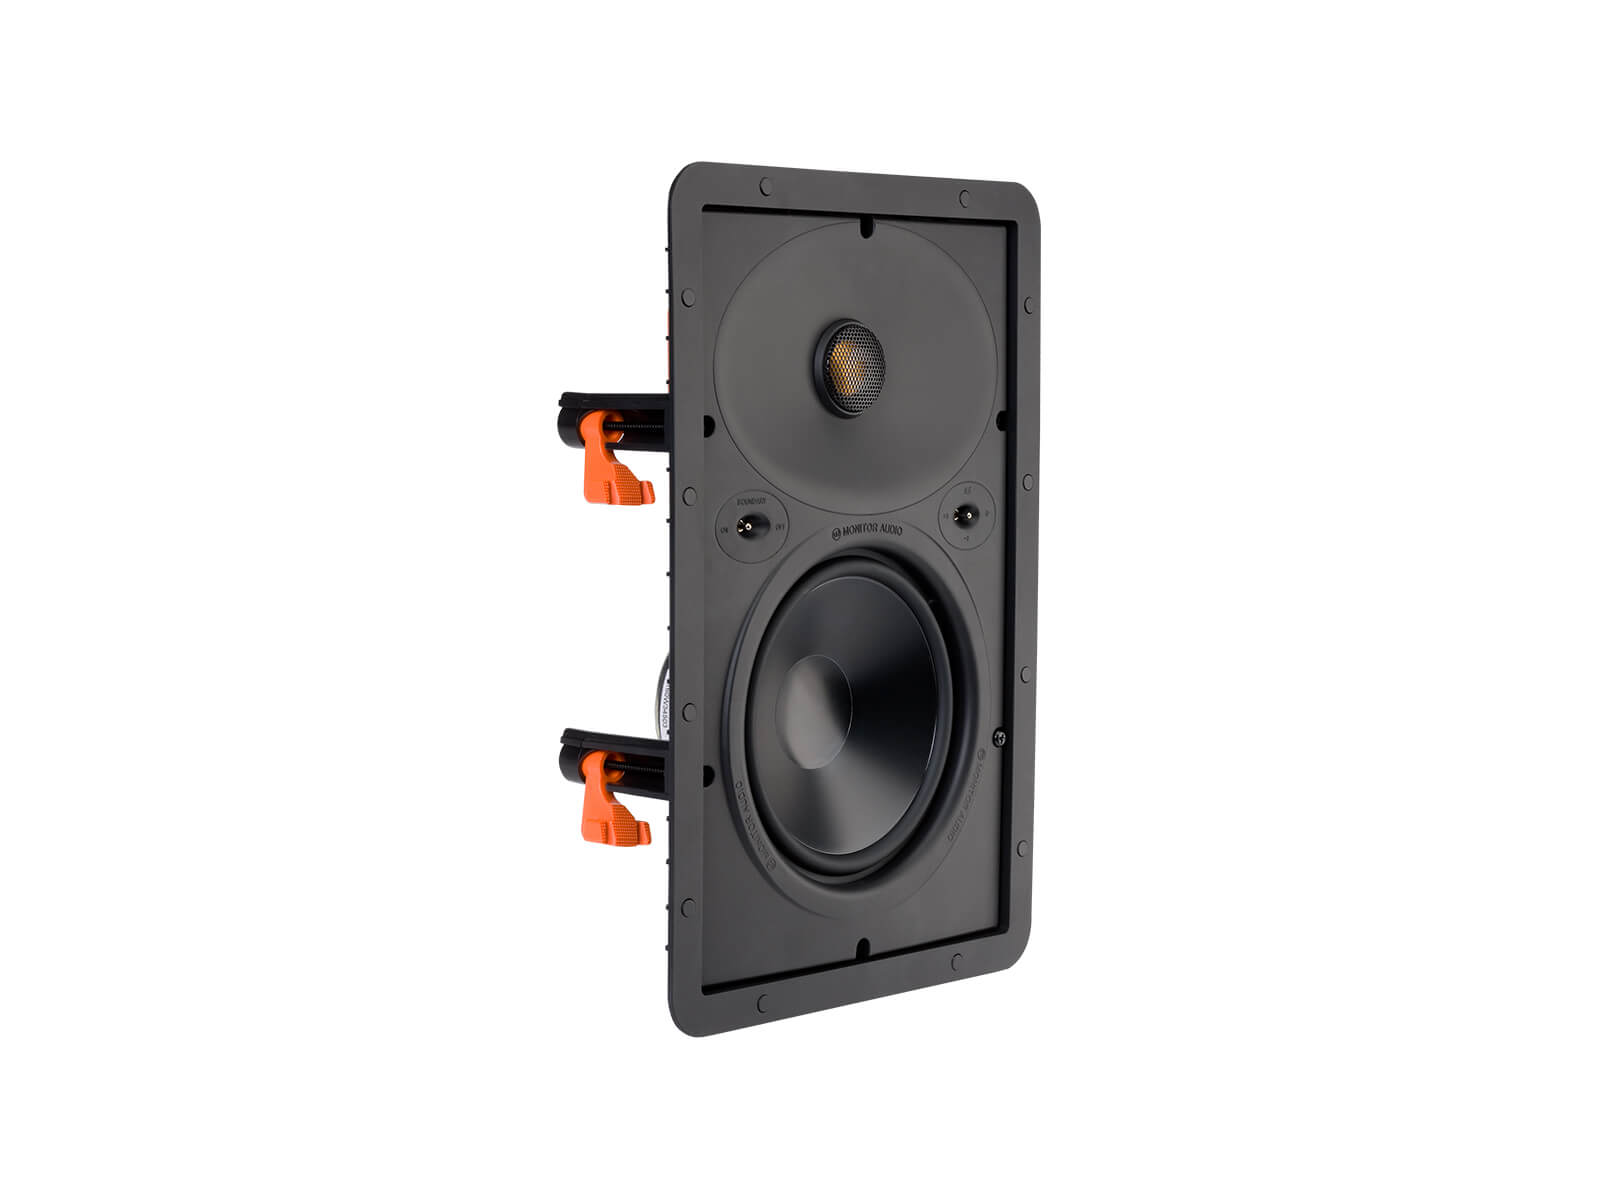 Core W265, front ISO, grille-less in-wall speakers.